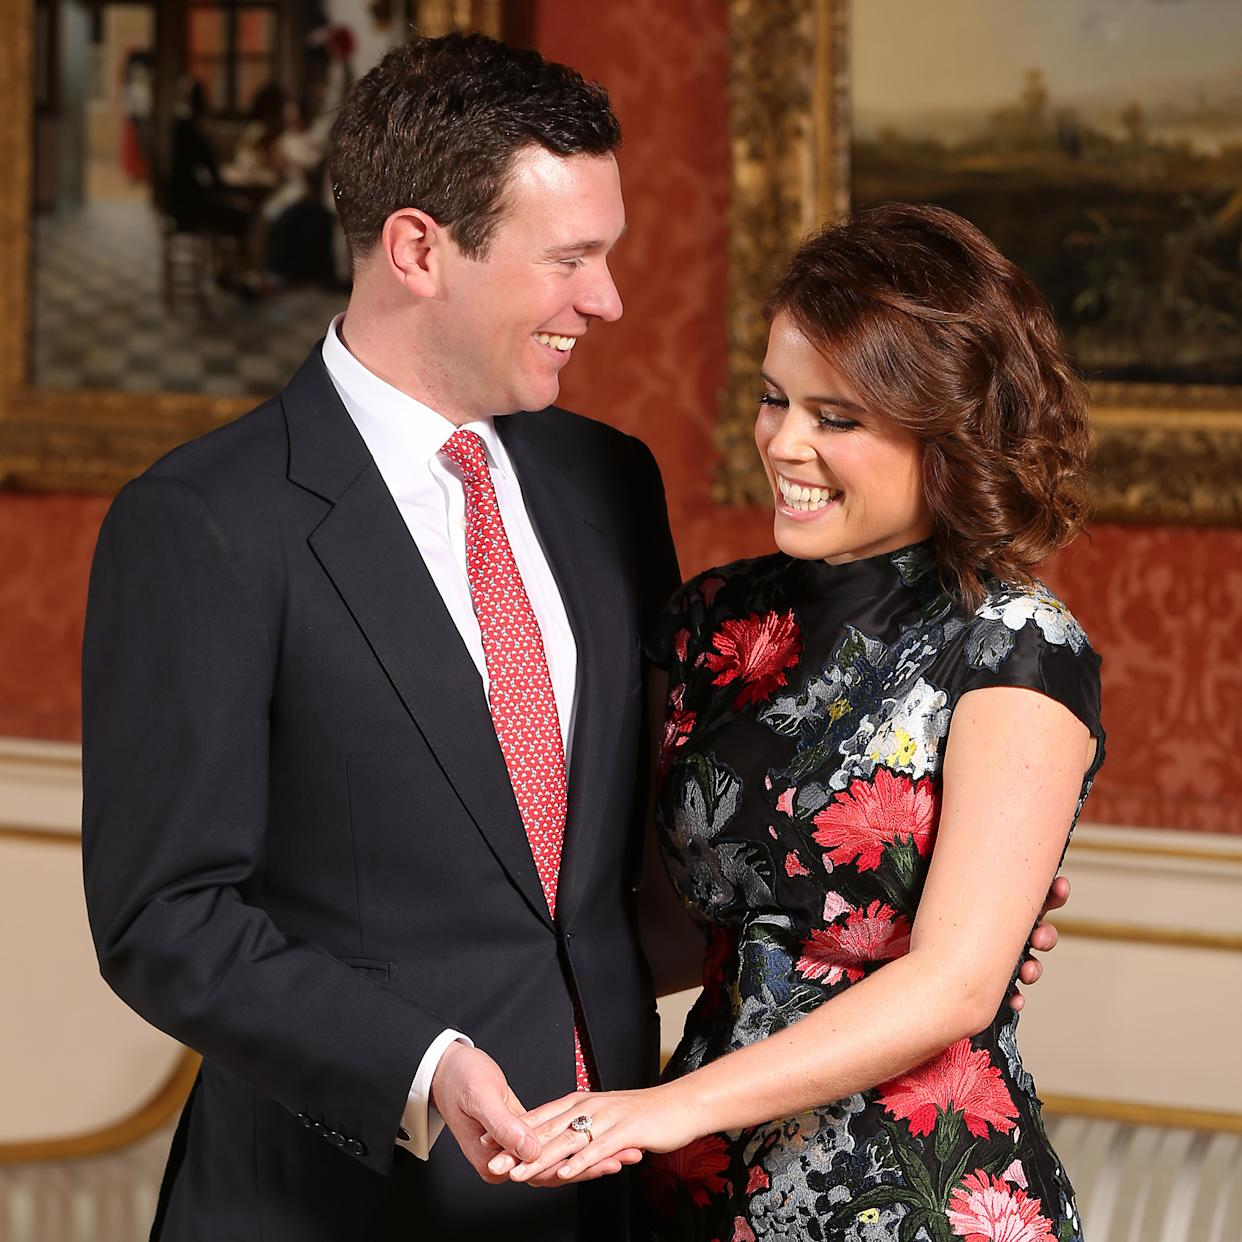 Princess Eugenie and Jack got engaged in January and are set to tie the knot in a matter of weeks. Photo: Getty